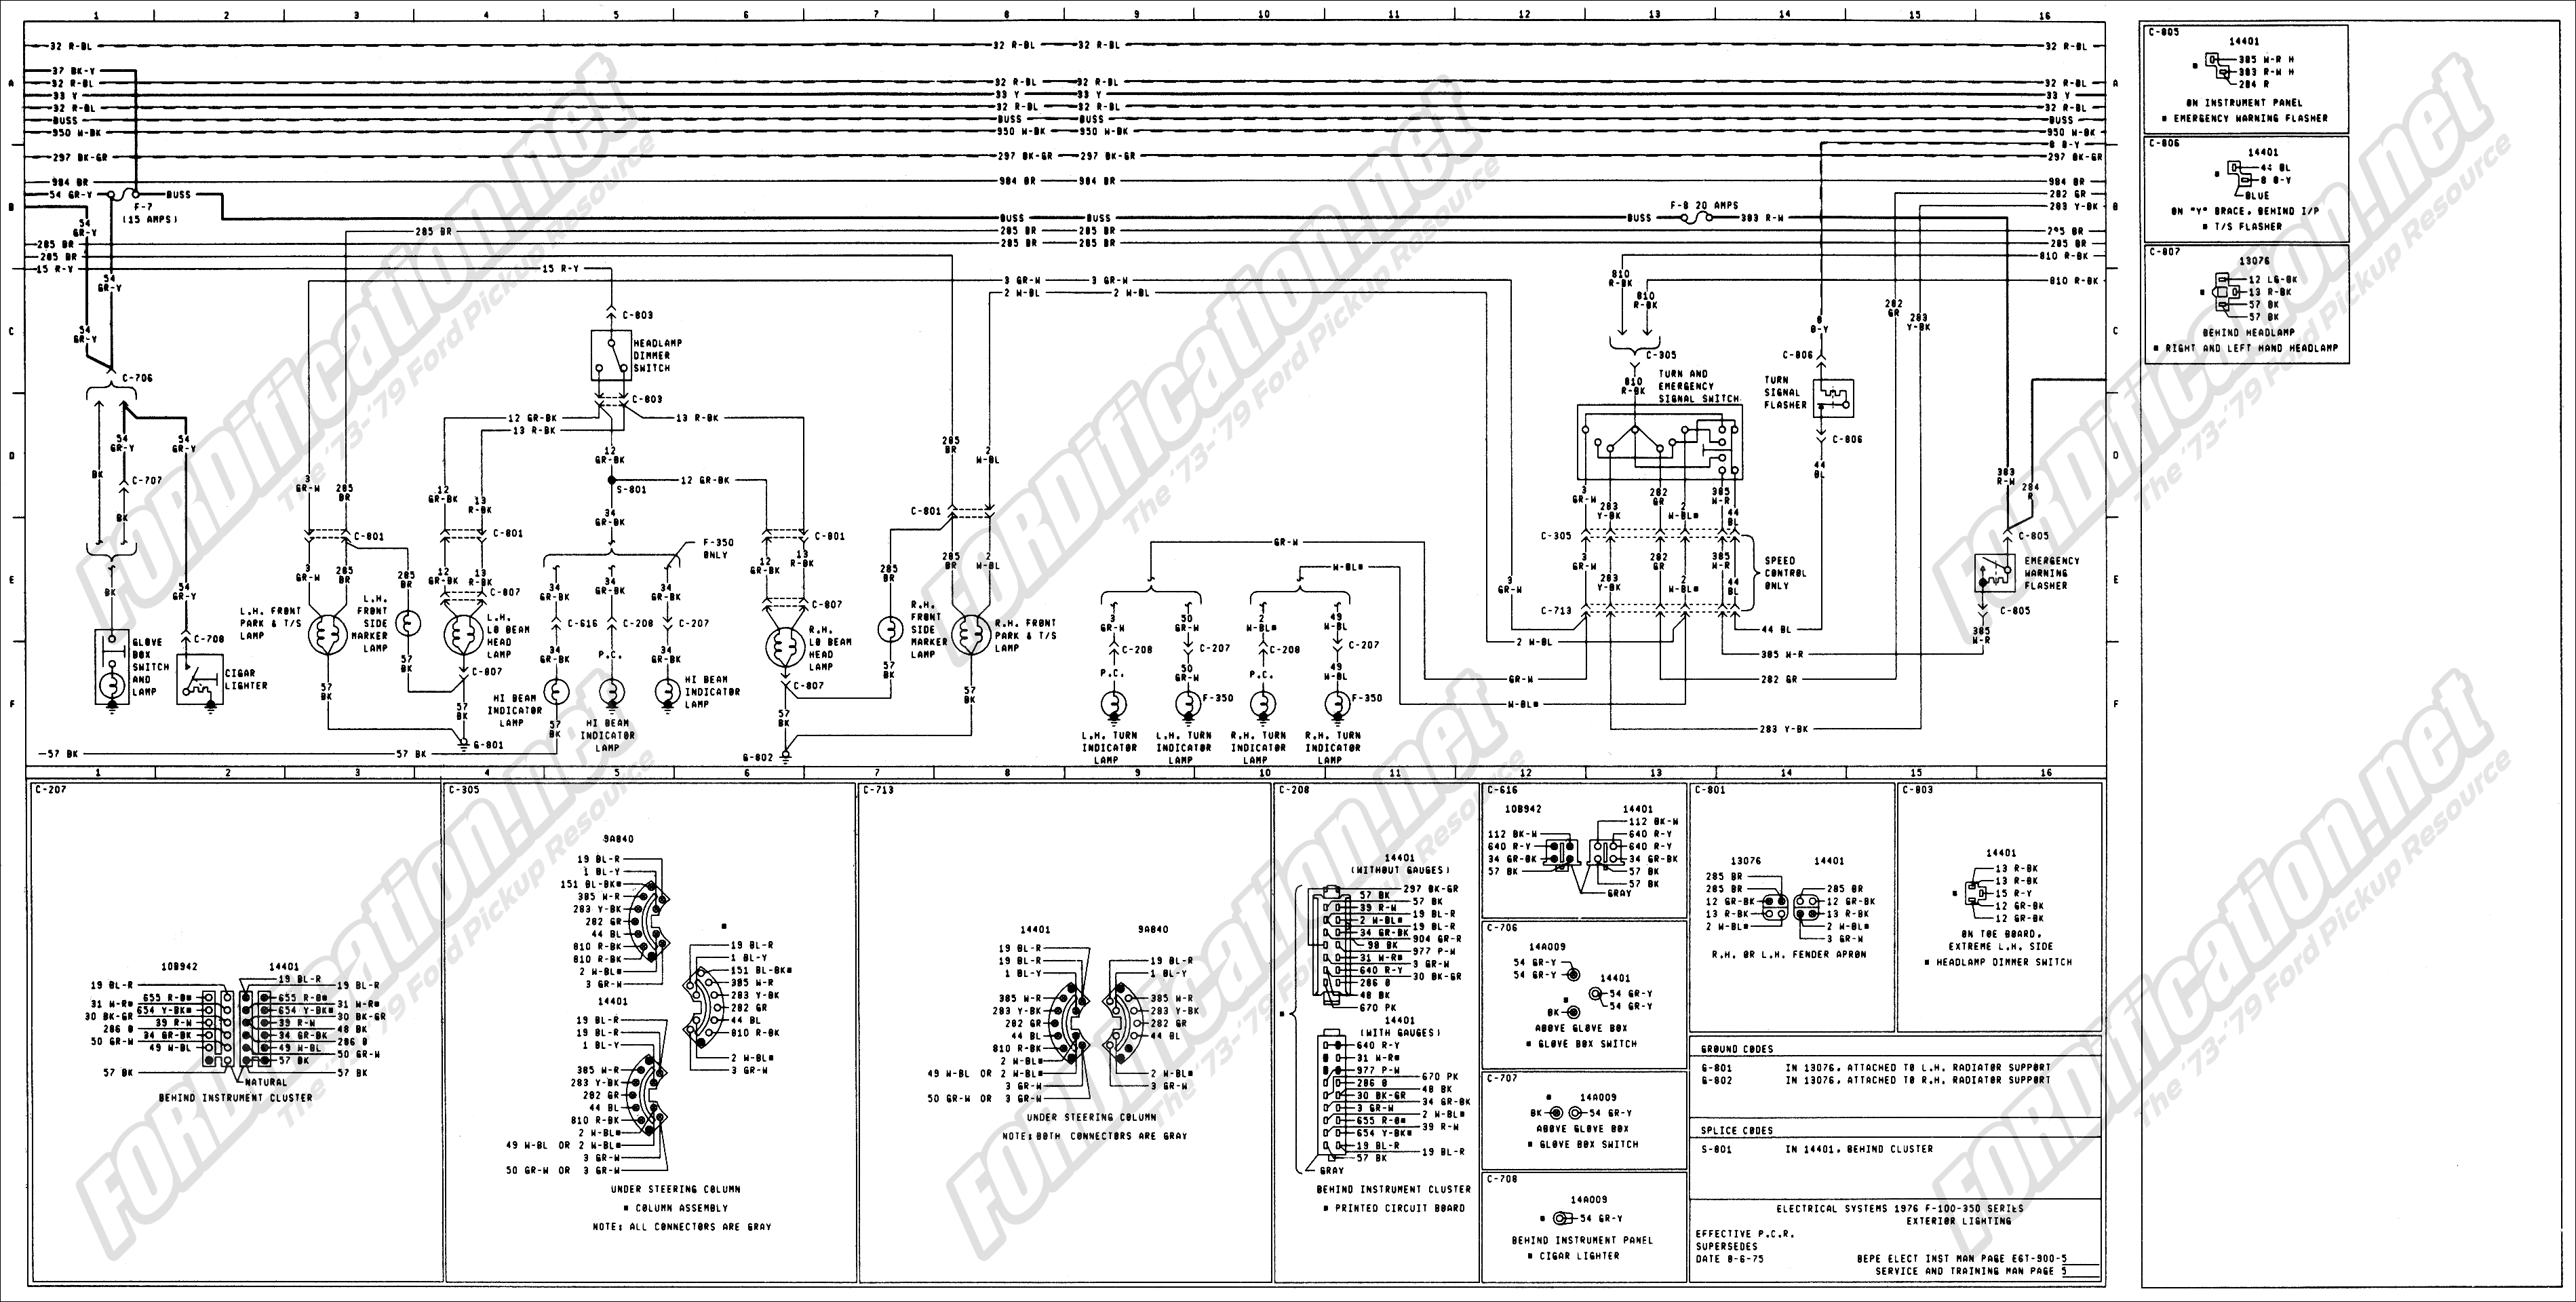 wiring_76master_5of9 1973 1979 ford truck wiring diagrams & schematics fordification net what color is l on a wiring diagram at soozxer.org